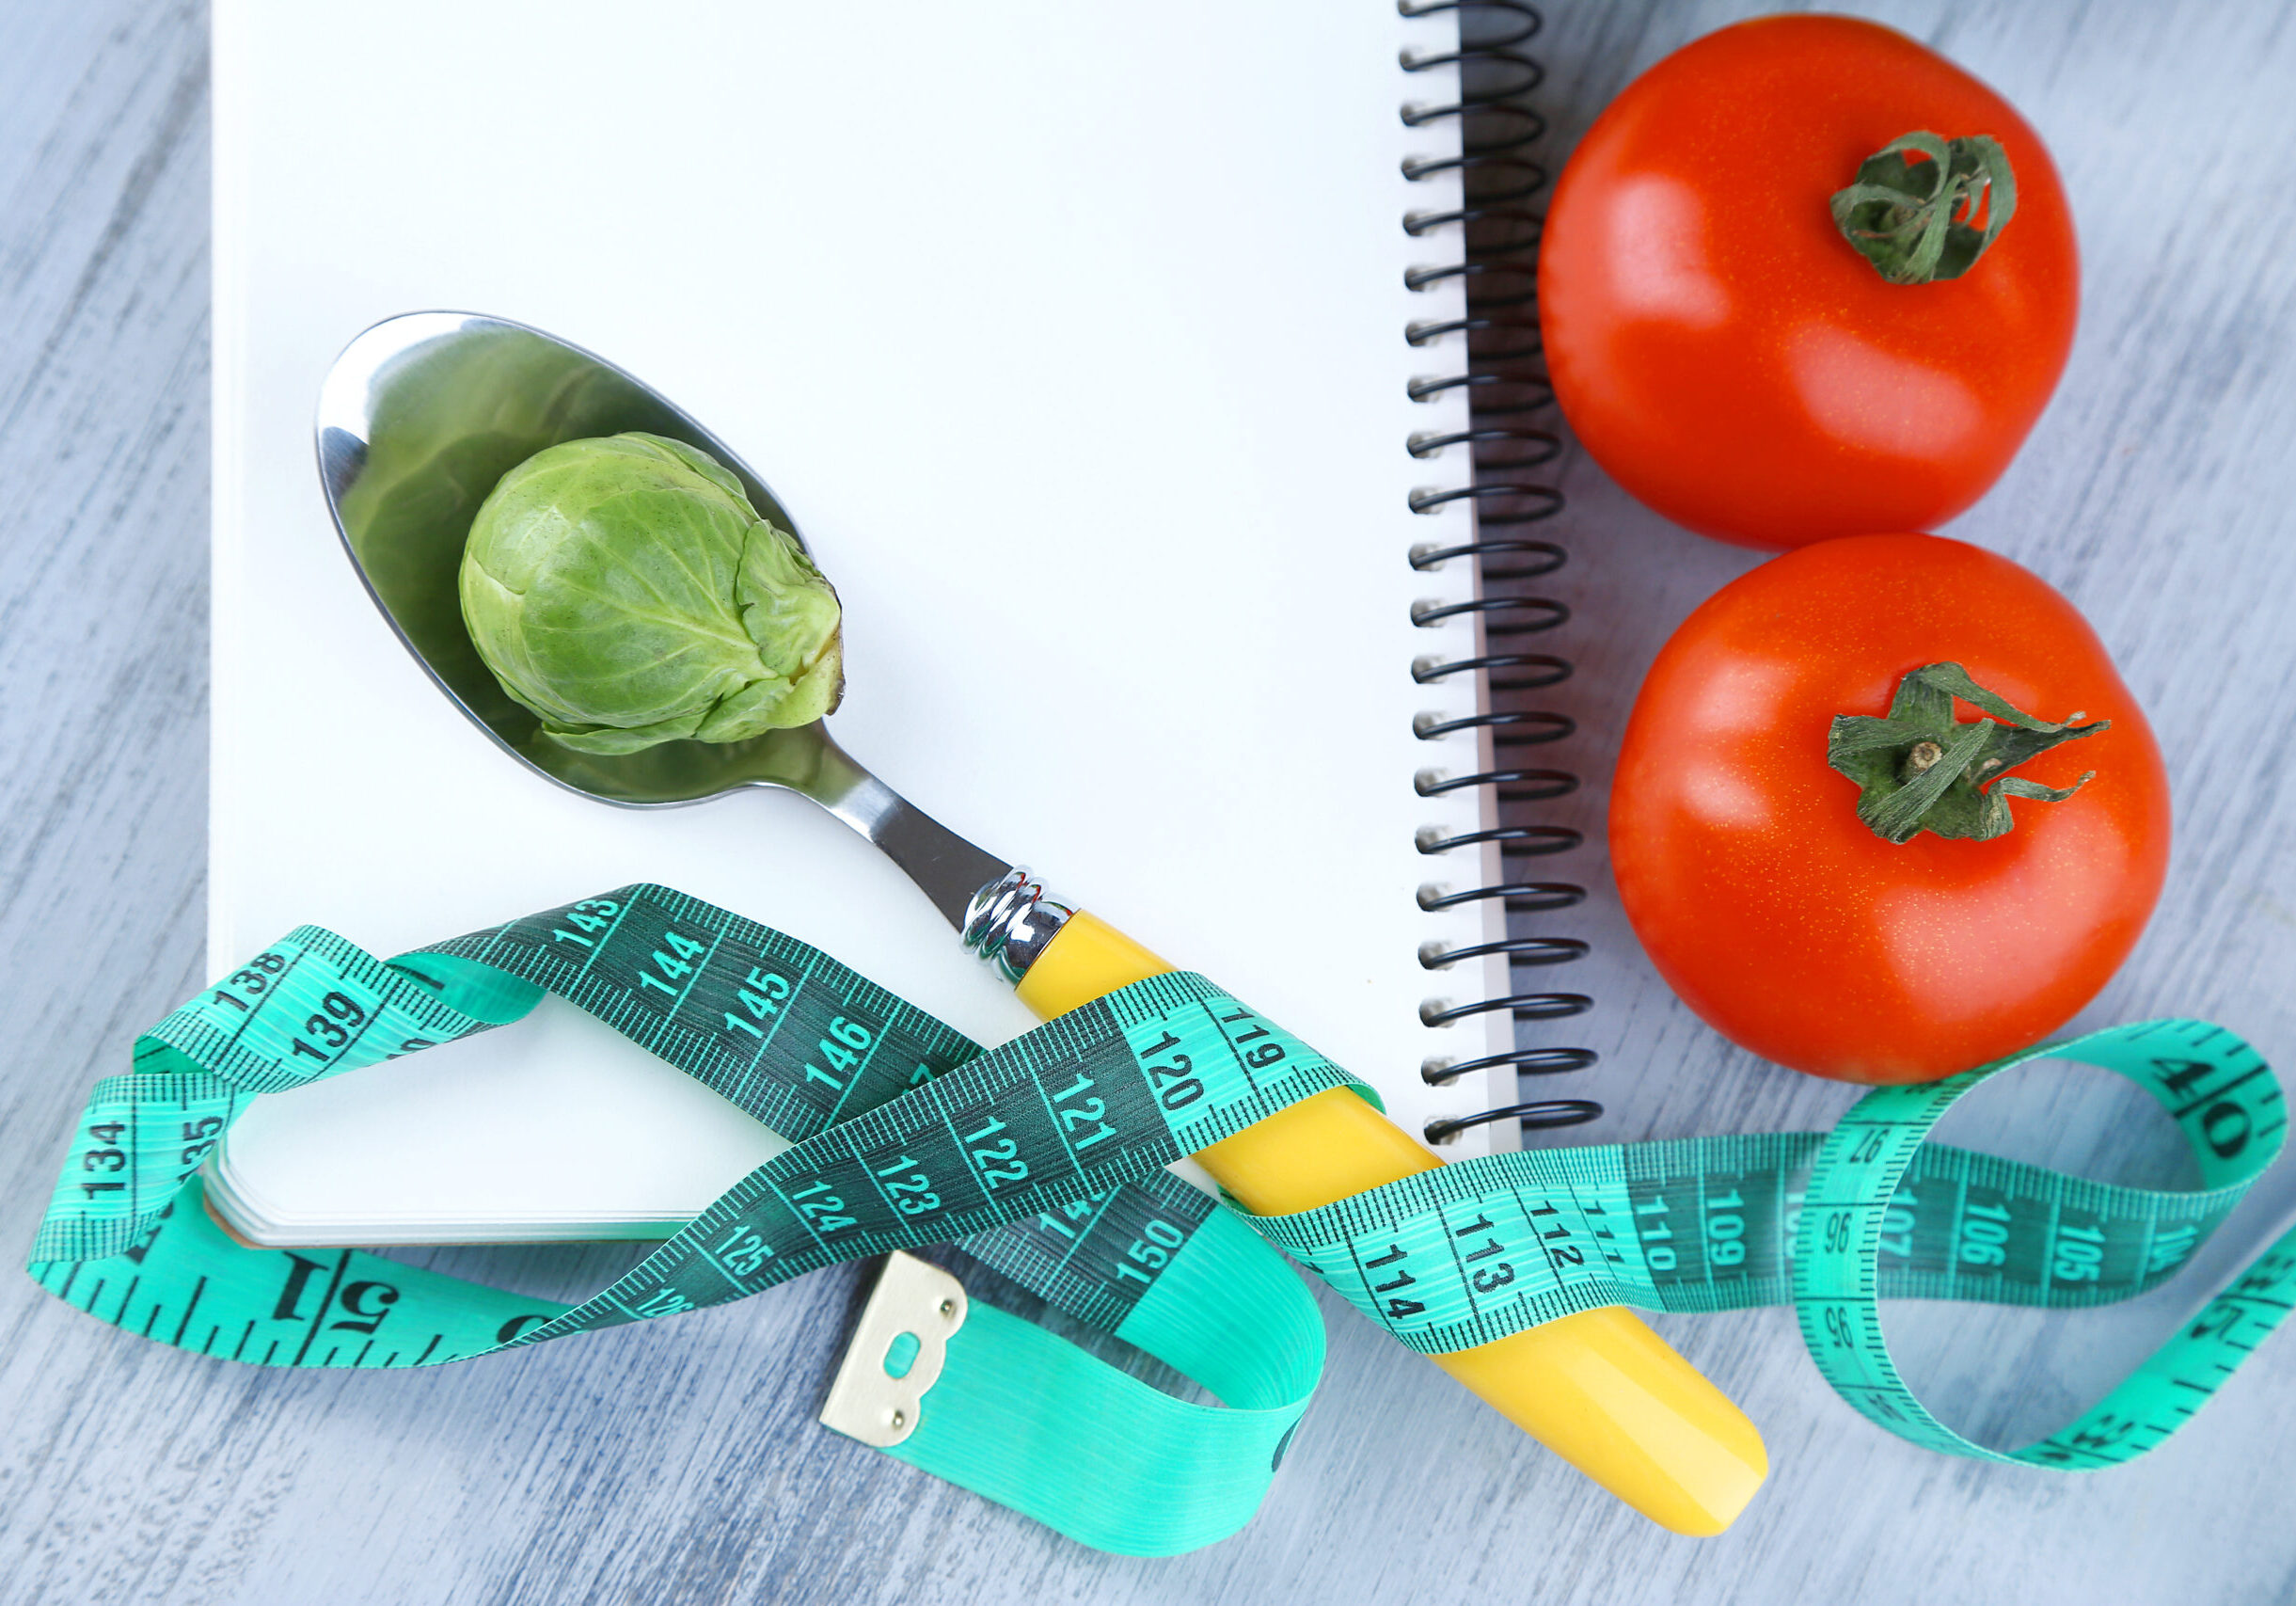 Notebook,With,Measuring,Tape,And,Vegetables,On,Wooden,Background